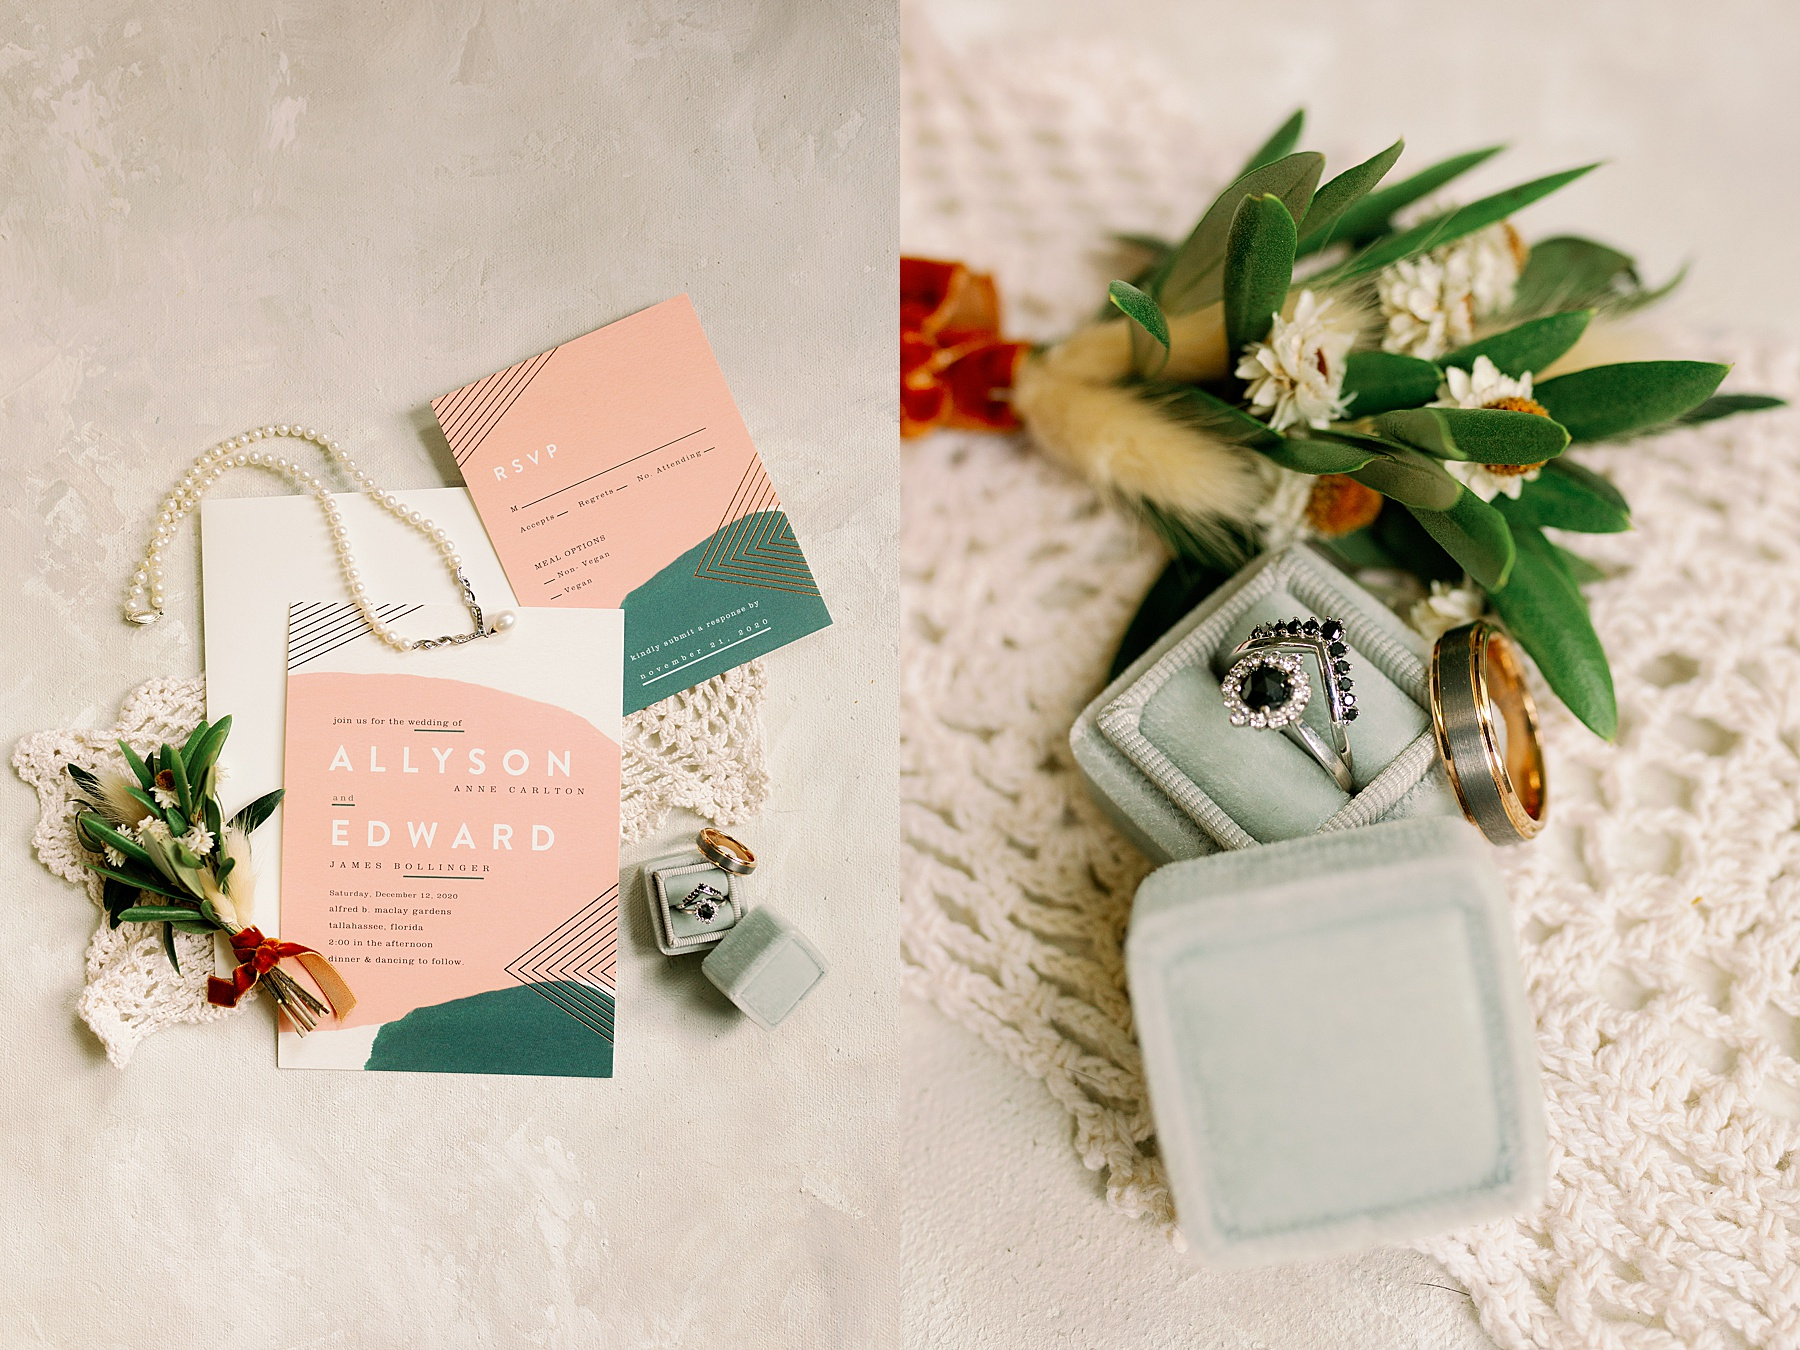 Wide photo of wedding invitation and close up of wedding rings